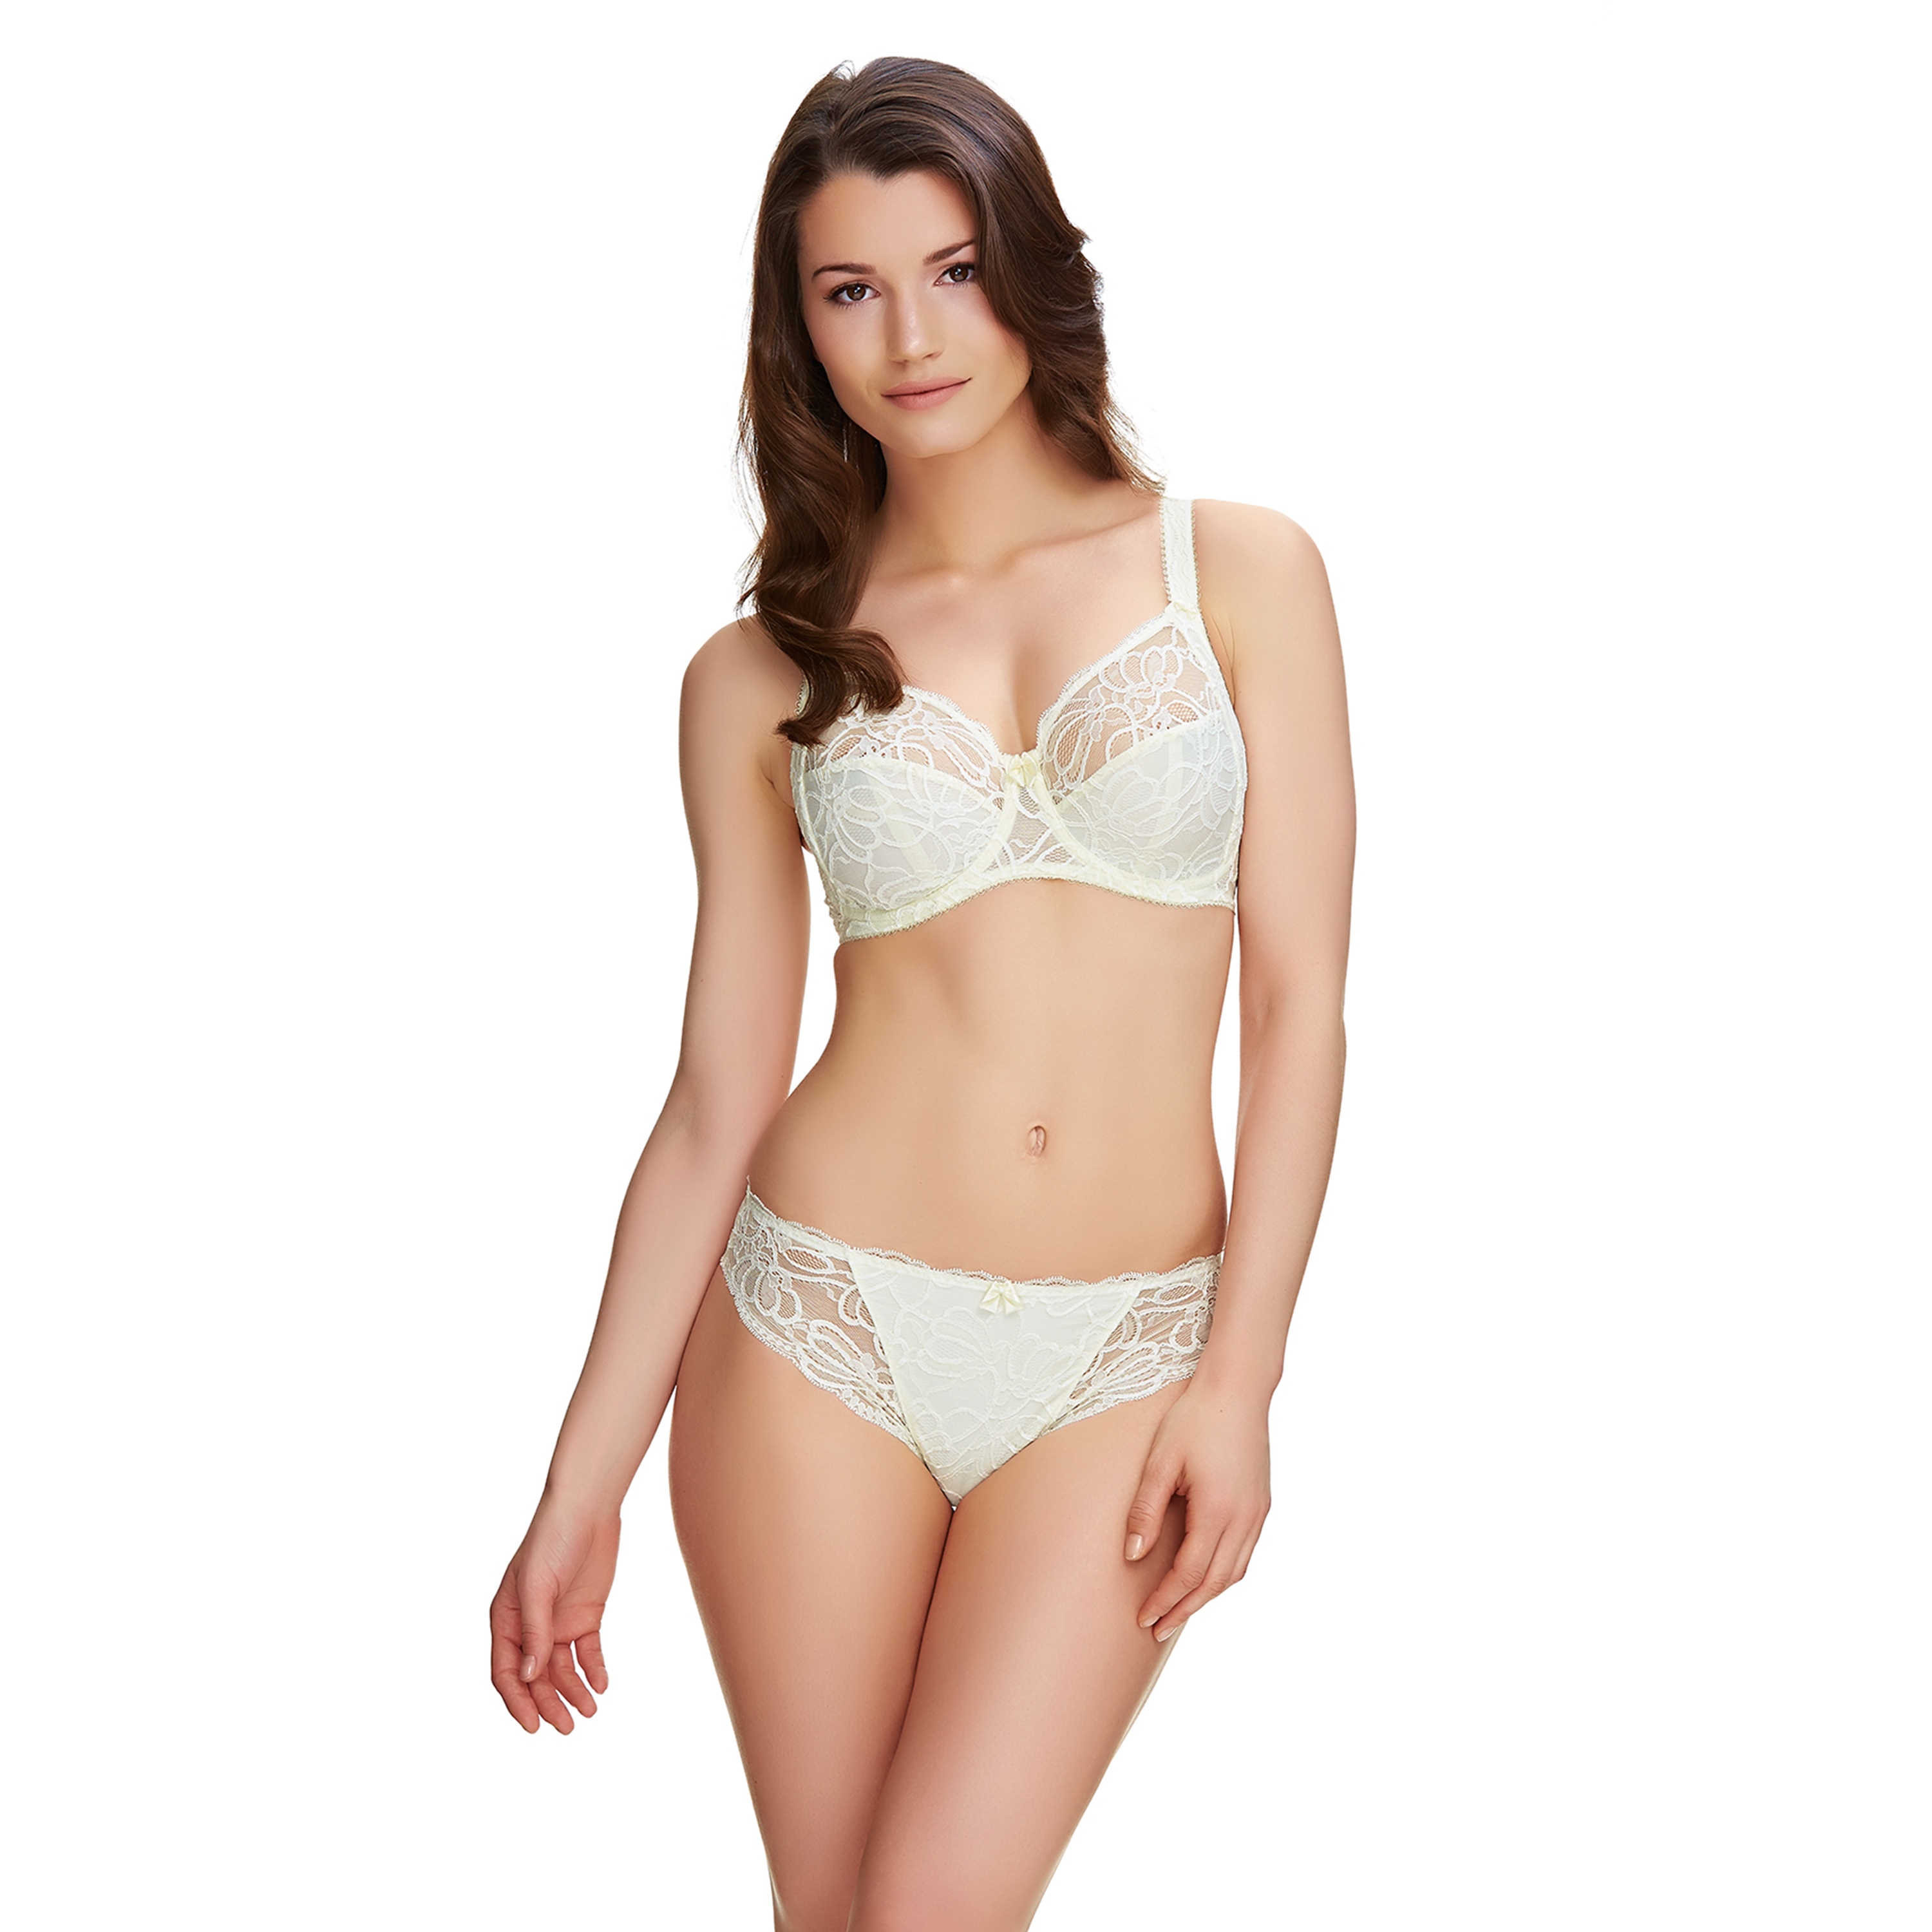 Fantasie Lace Soft Cup Bra Four Seasons Lingerie And Swim